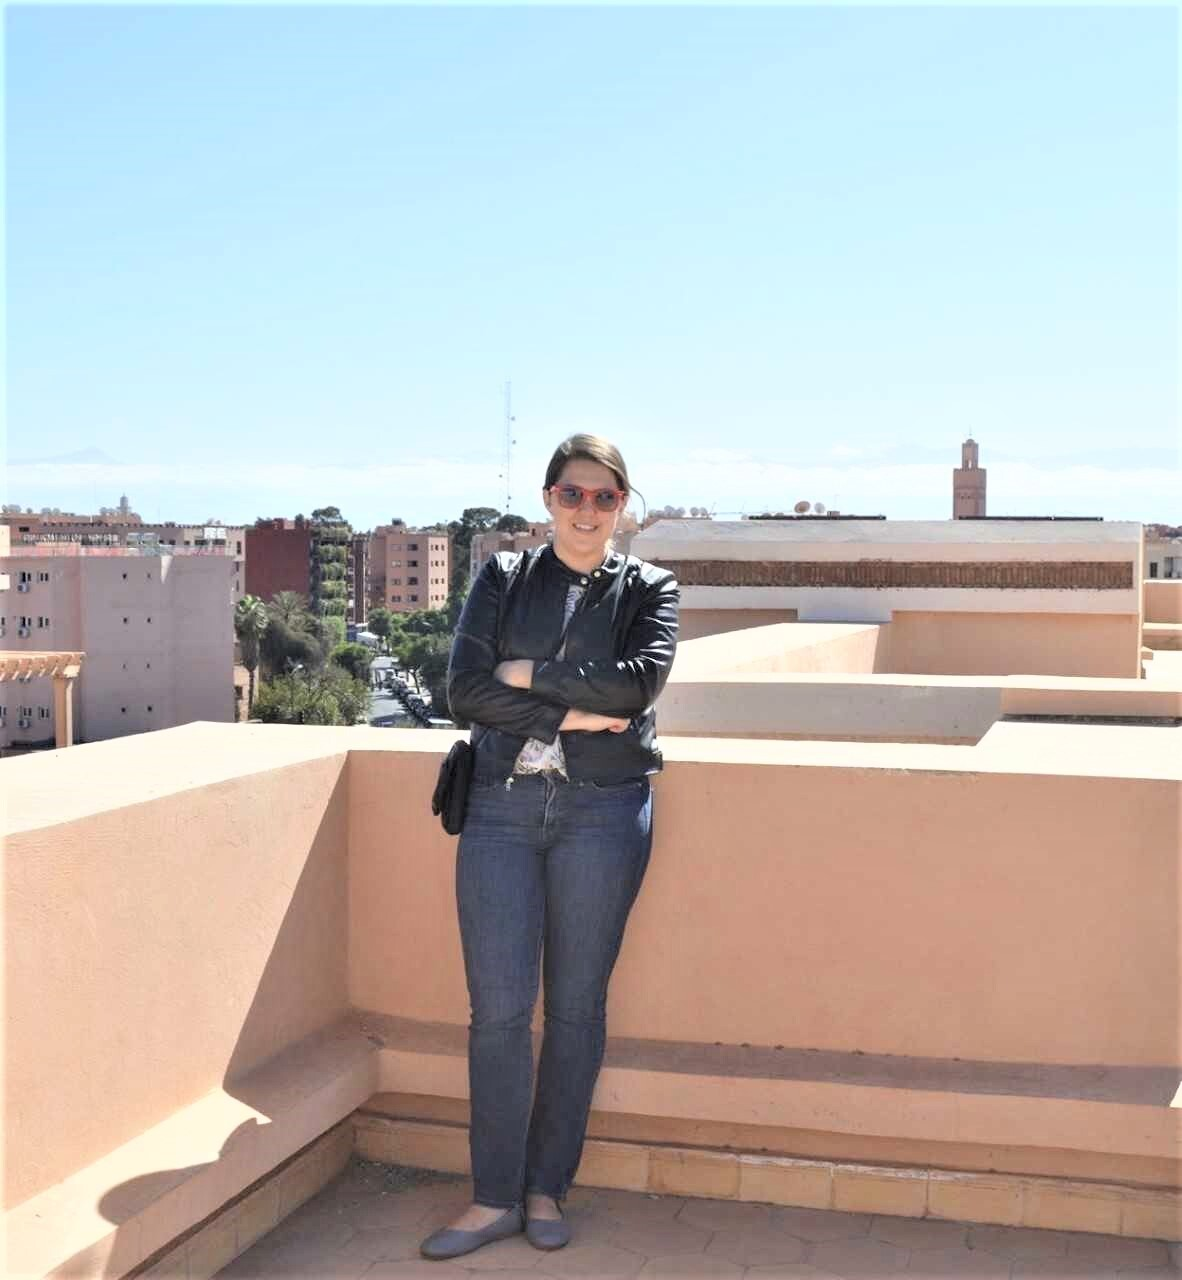 UMass Lowell History Department Alumna Kate DiTullio poses on a rooftop with the Marrakech skyline behind her.